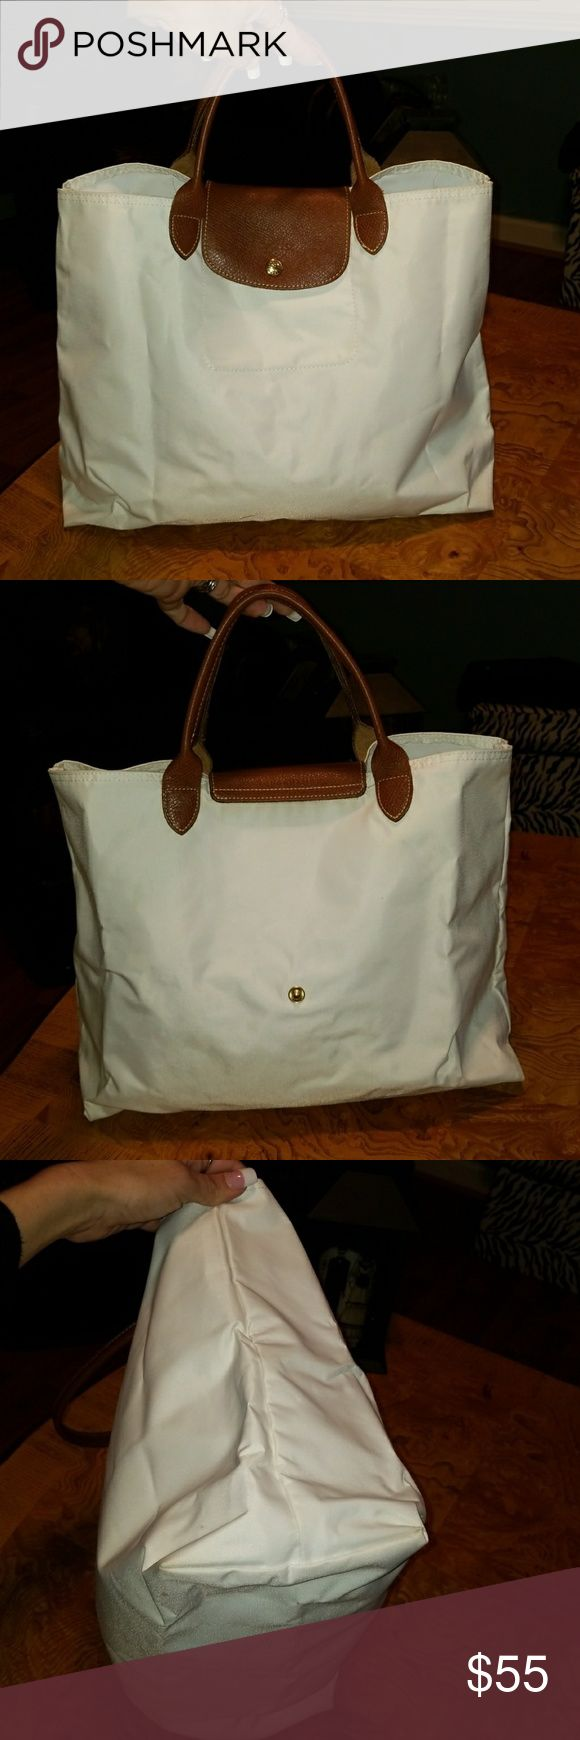 Longchamp Cabas Modele Depose White Bag Authentic Longchamp Cabas Models Depose White nylon. Pre owned with light general  Signs of use. It still has a lifetime of use left.  This bag measures H13, L16, D 6, strap is 5. Longchamp Bags Totes